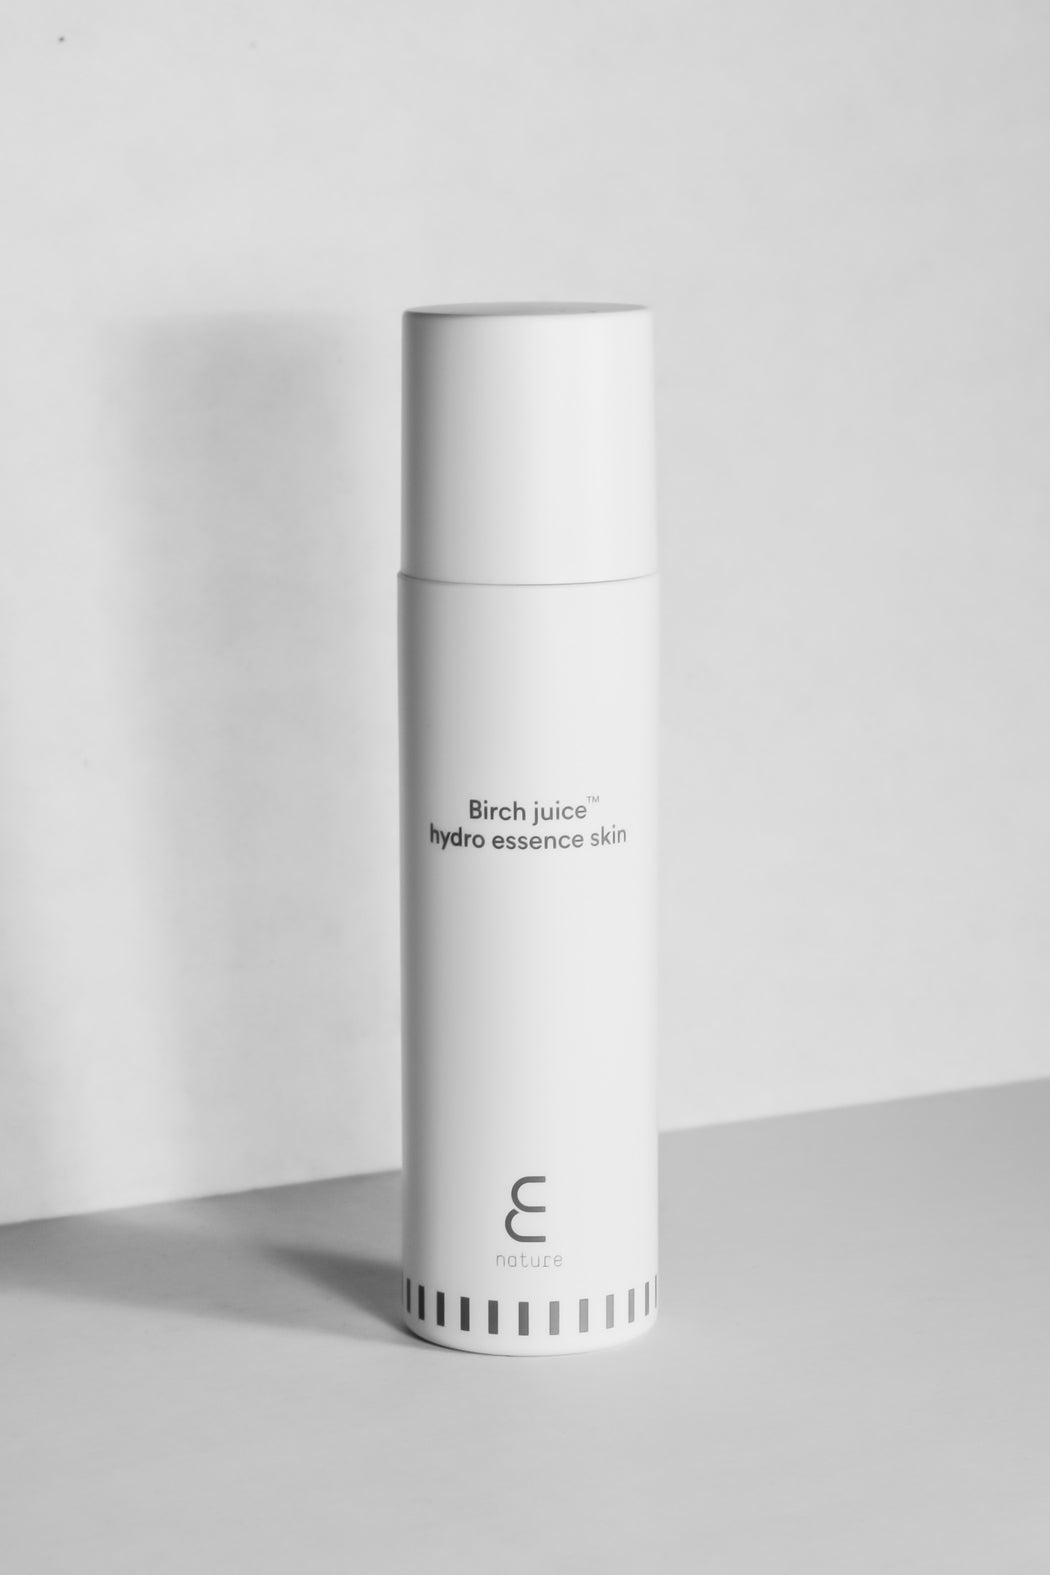 Birch Juice Hydro Essence Skin